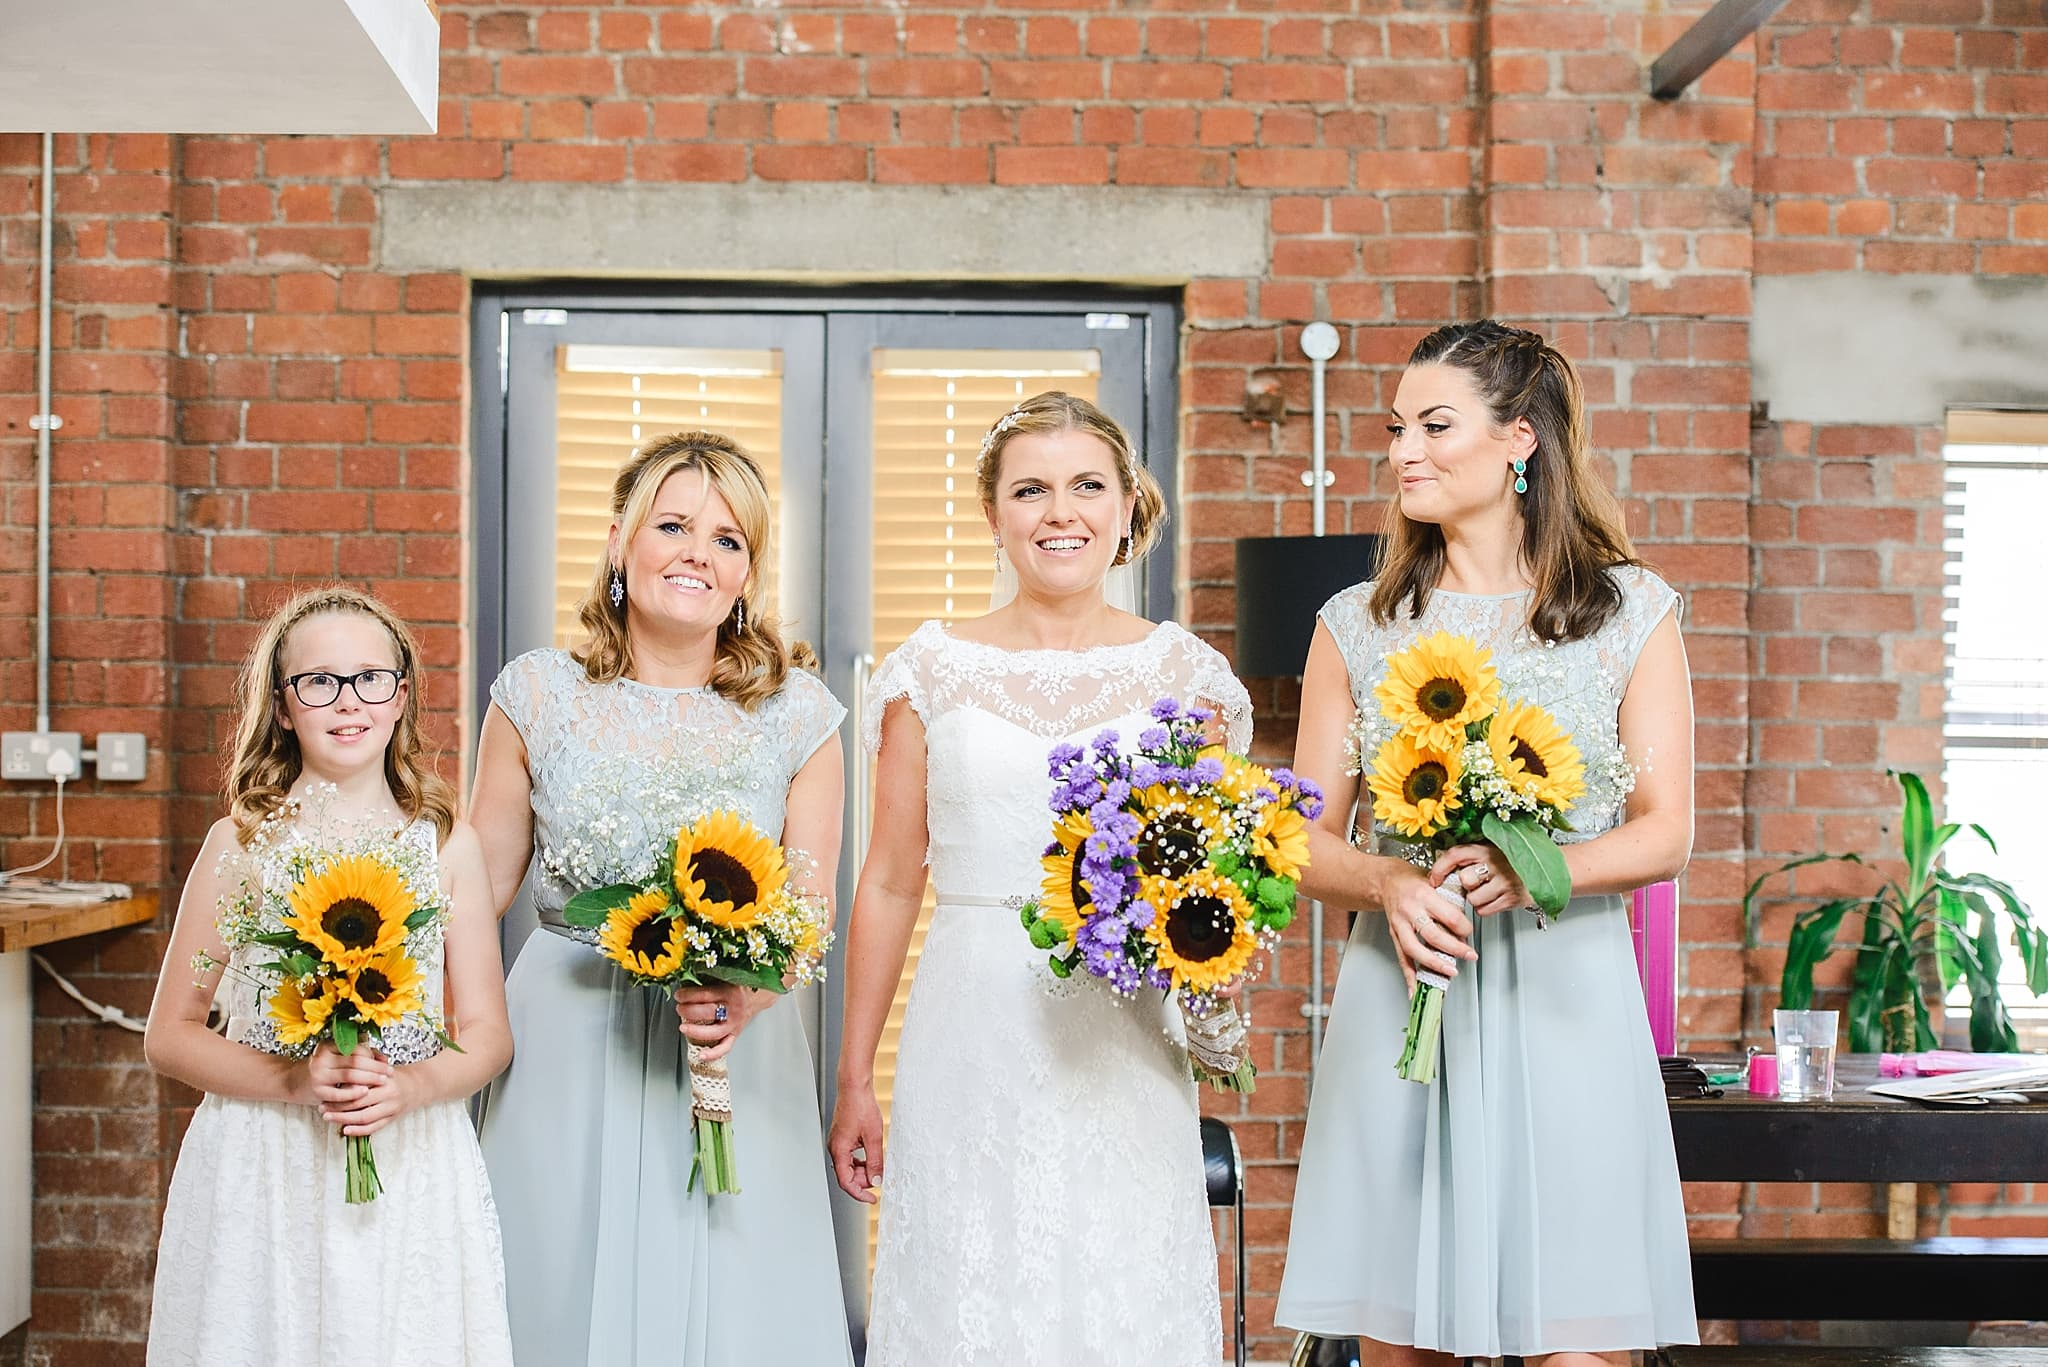 Bridesmaids lined up before the wedding at the apartments in the paintworks